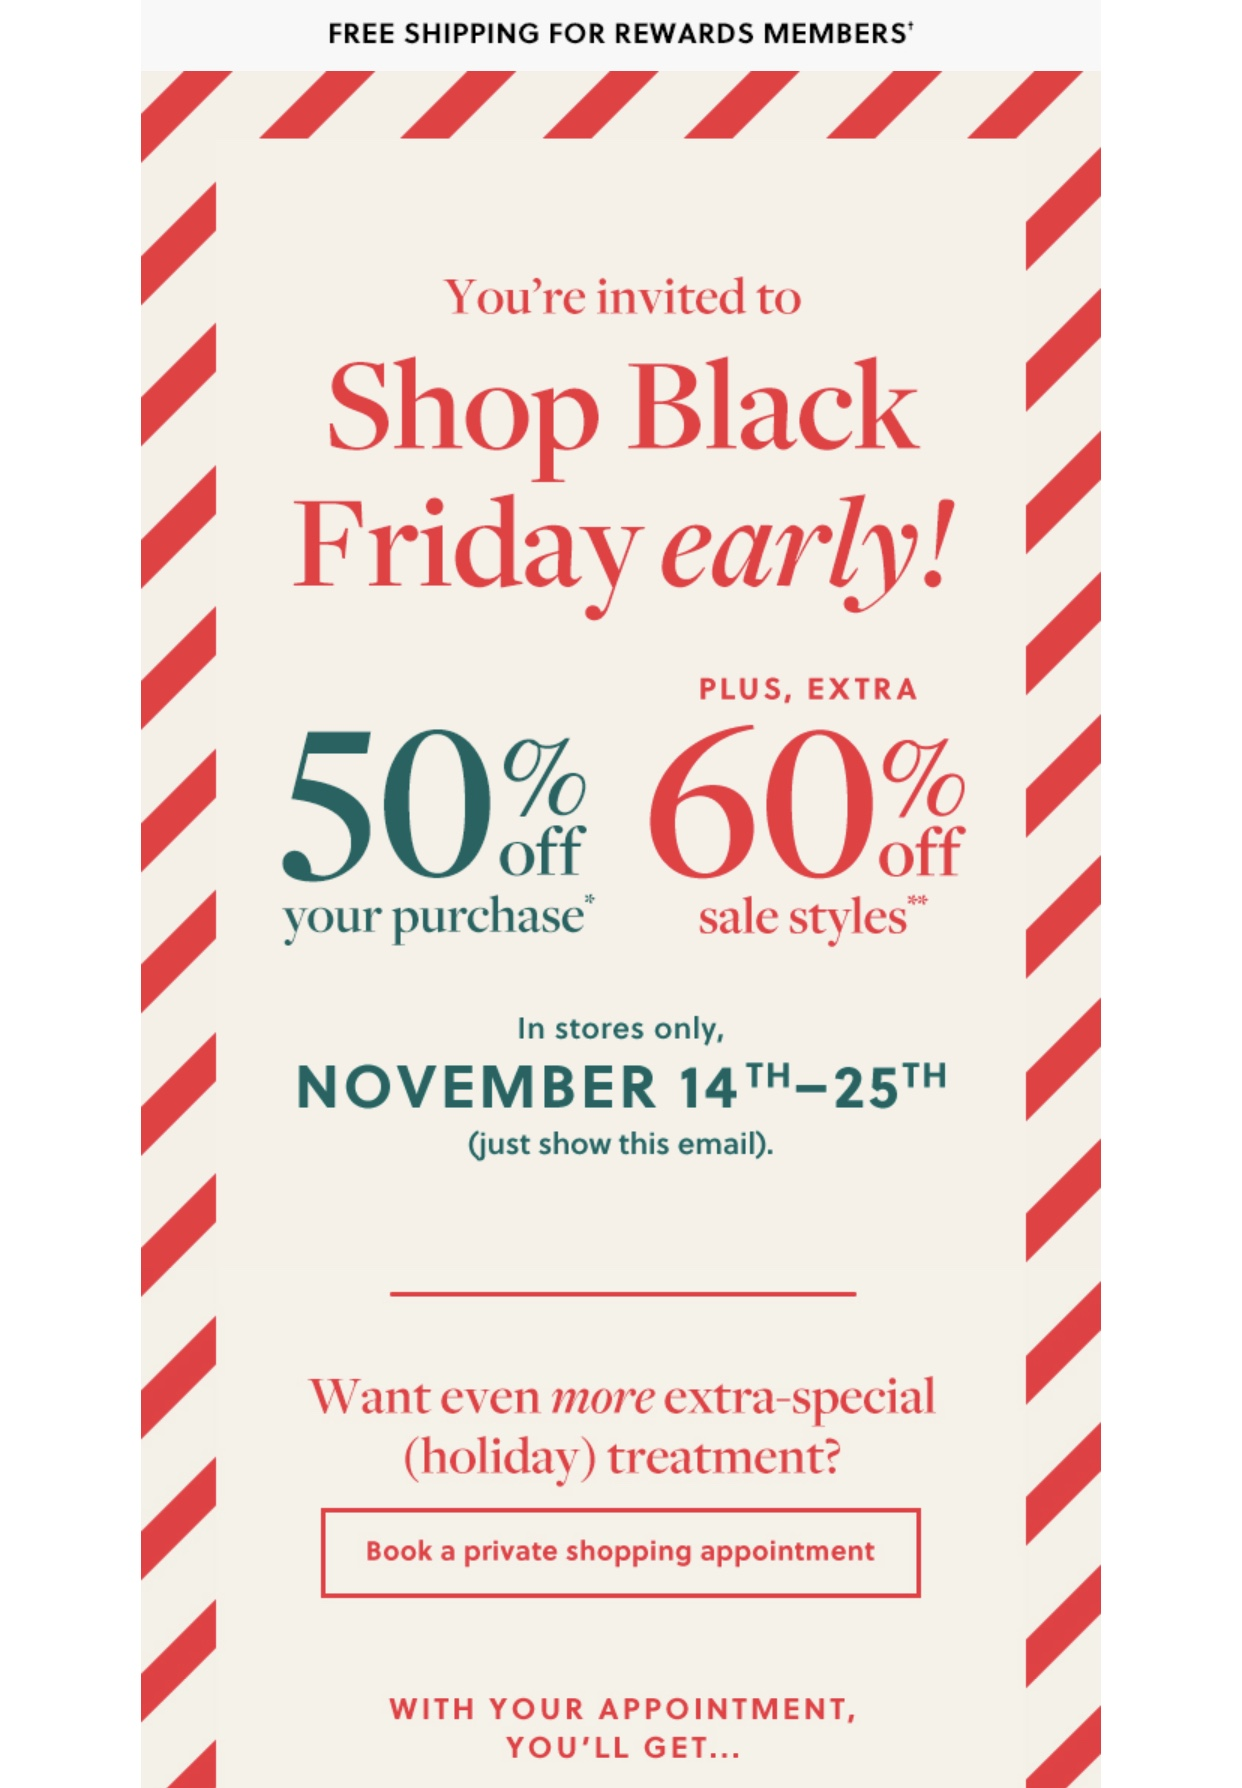 J.Crew Cardmember Early Black Friday Email Promo